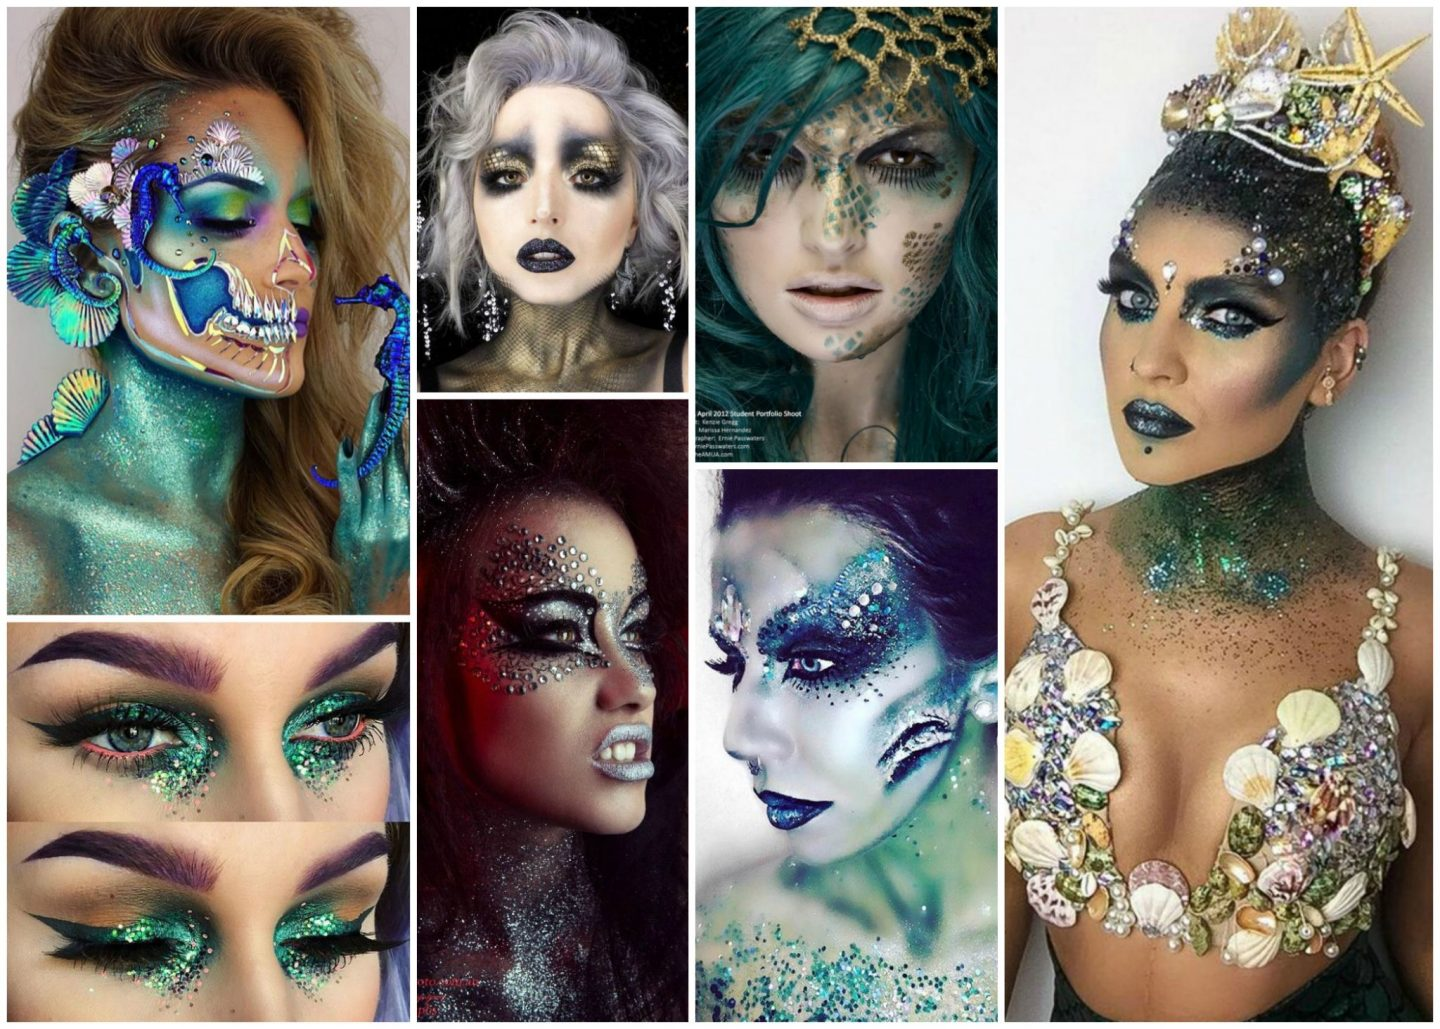 Creepy halloween sparkly glitter mermaid face-paint makeup inspiration costume